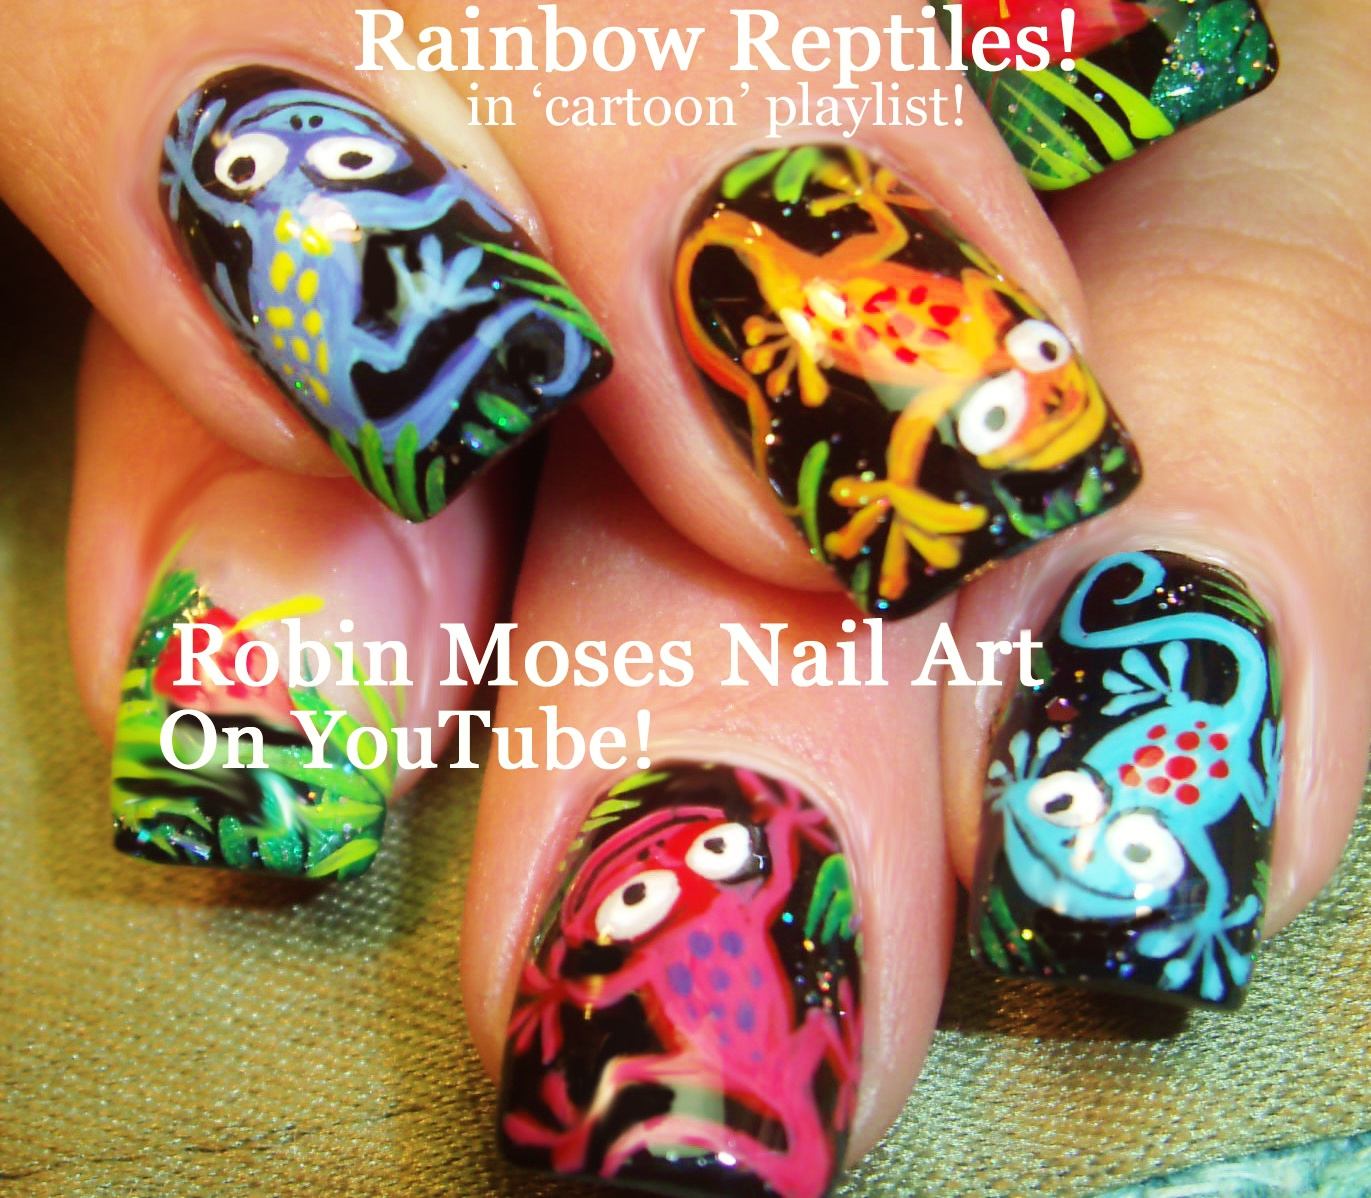 Robin Moses Nail Art February 2015: Robin Moses Nail Art: Rainbow Animal Paw Prints! Super